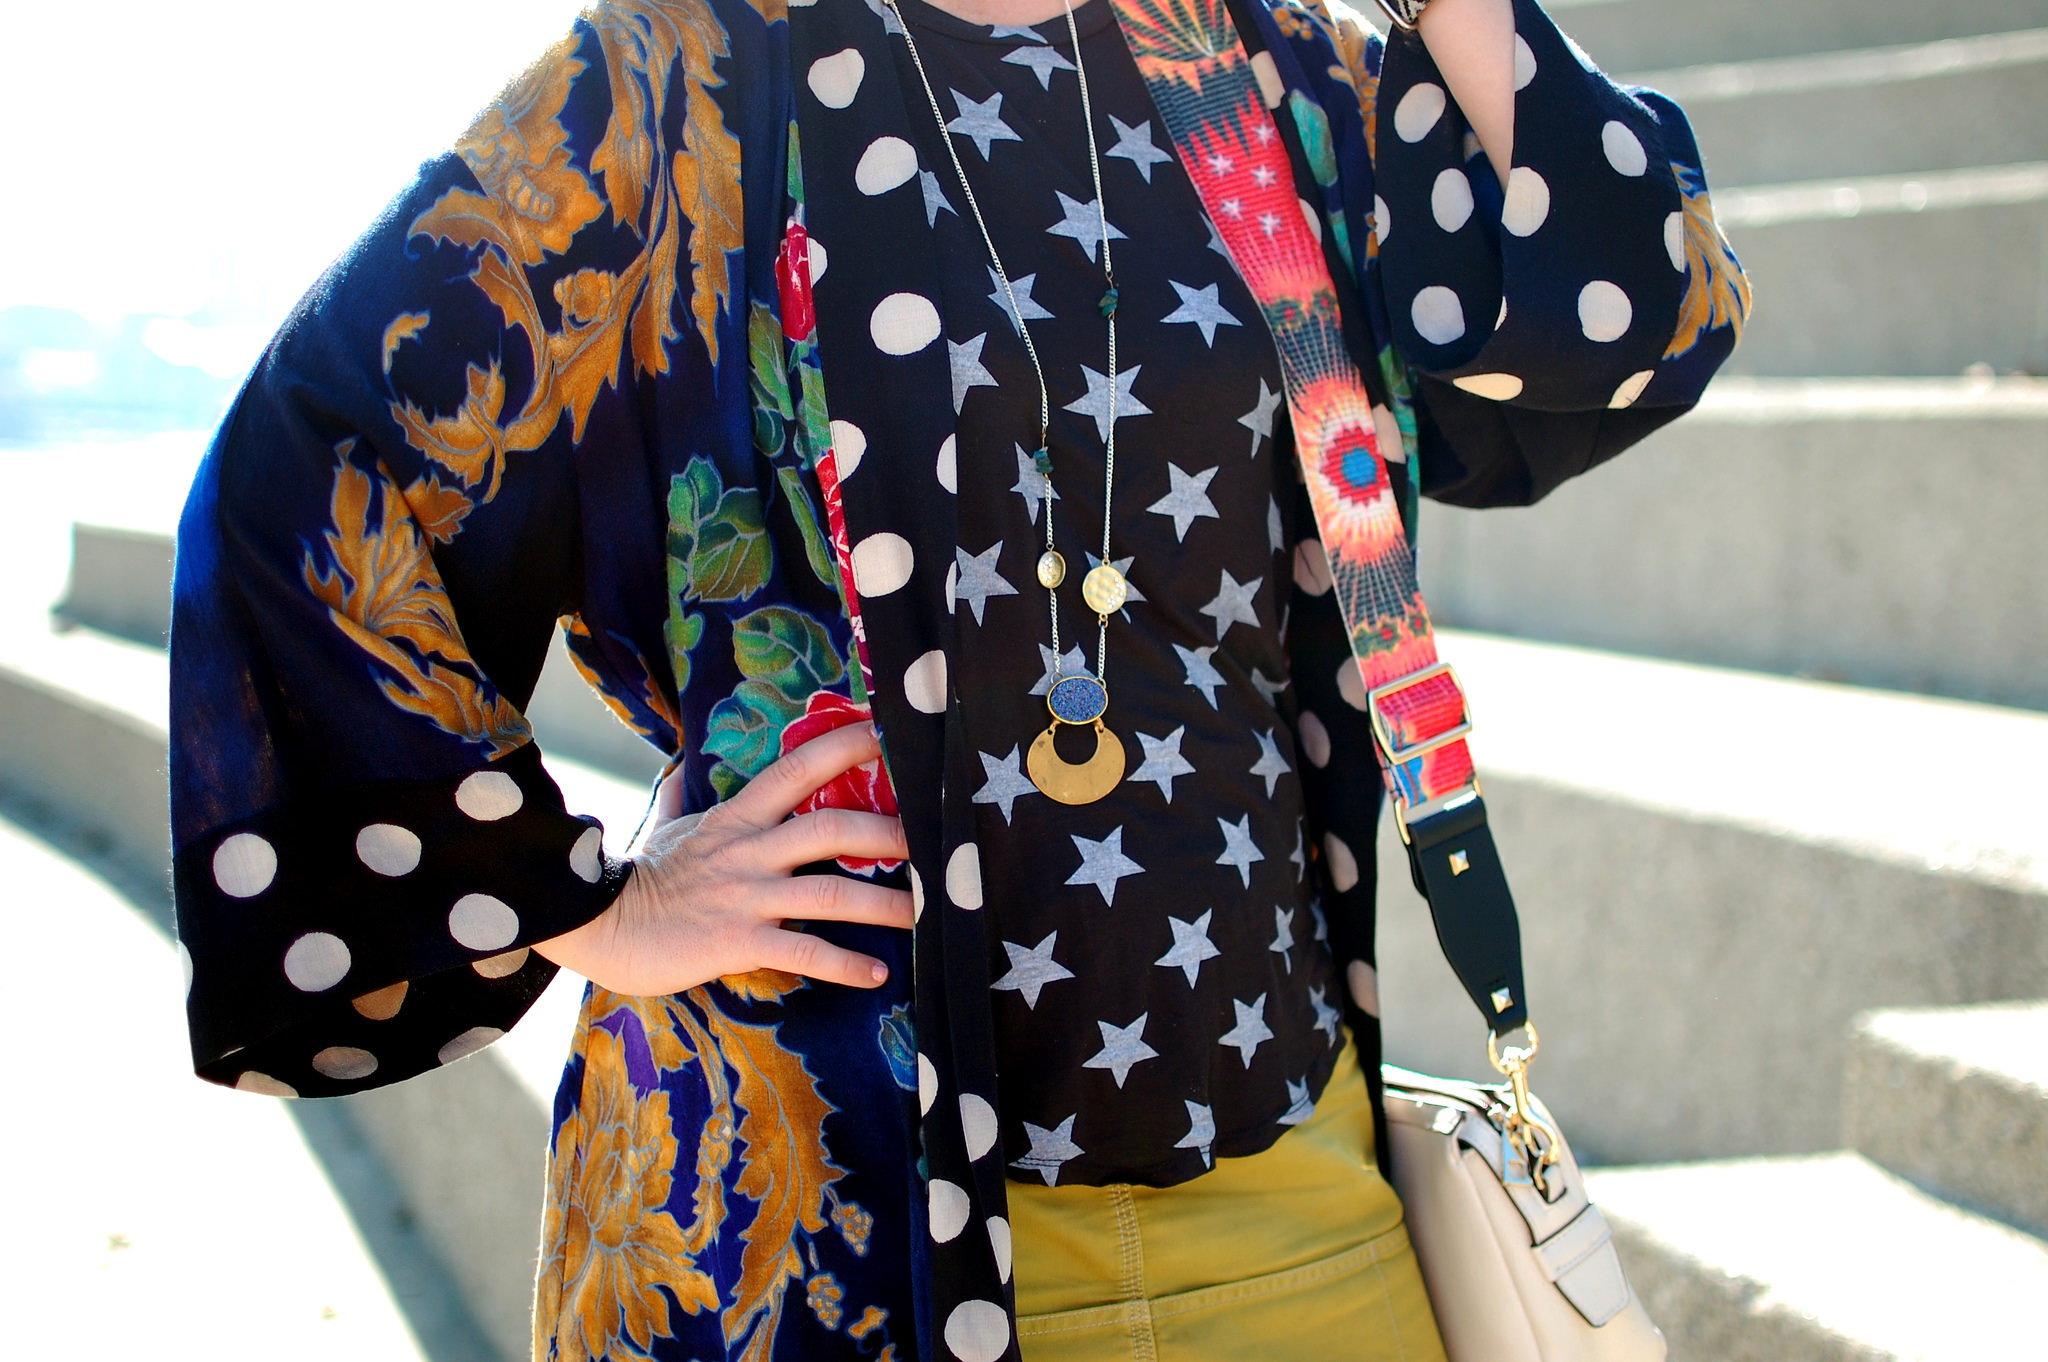 star floral kimono pattern mix daily outfit blog ootd whatiwore2day